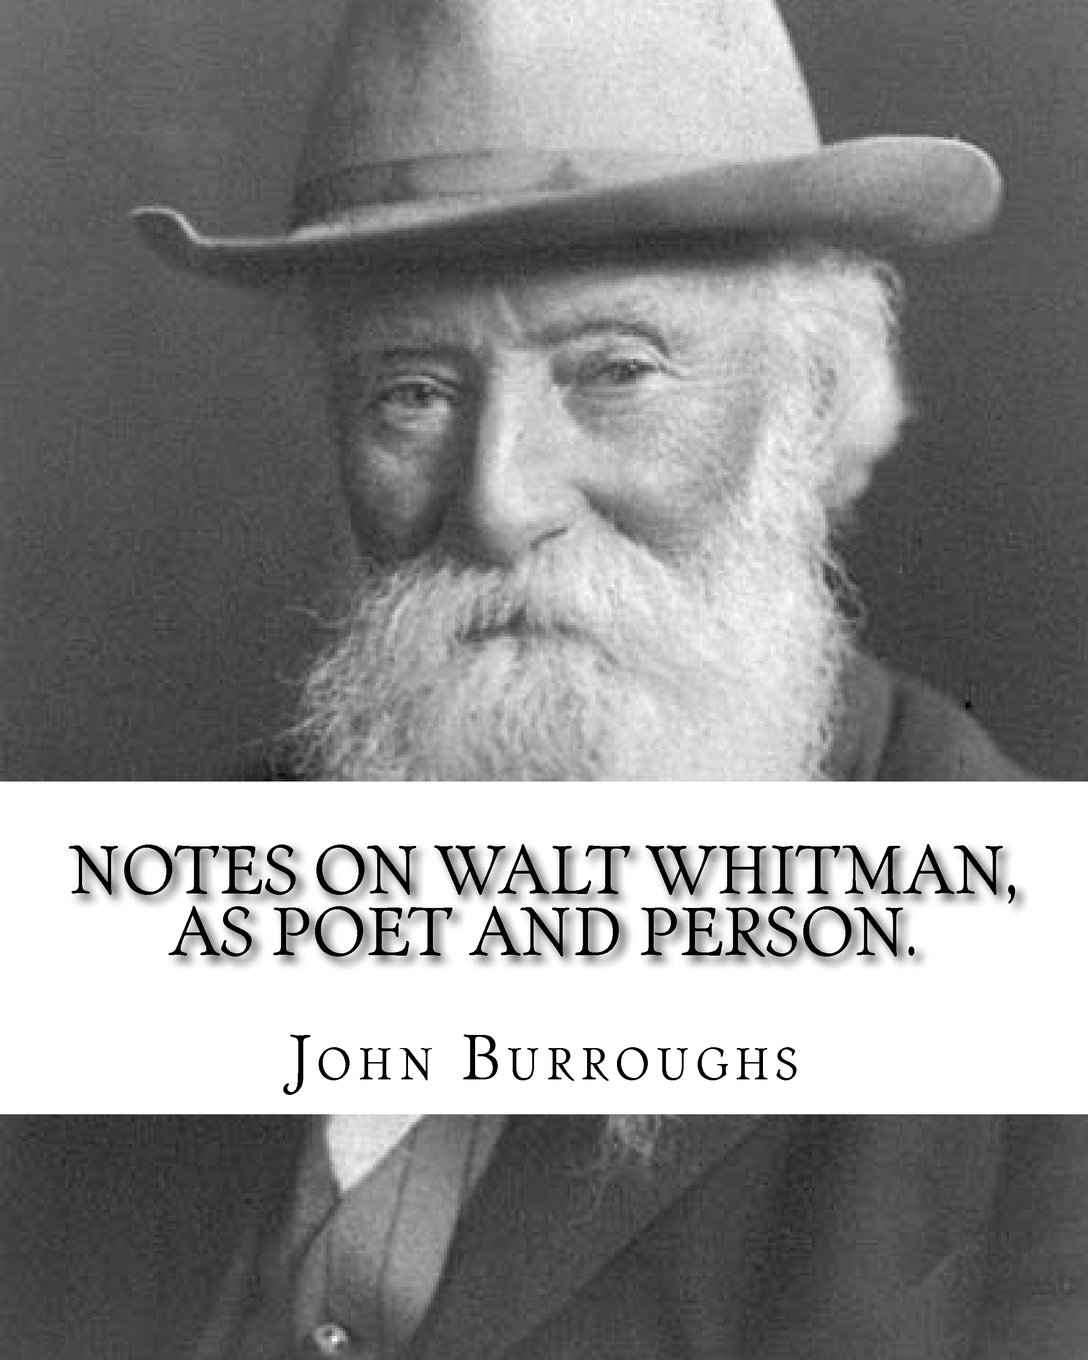 Notes on Walt Whitman, as poet and person. By: John Burroughs: second edition (World's classic's) PDF